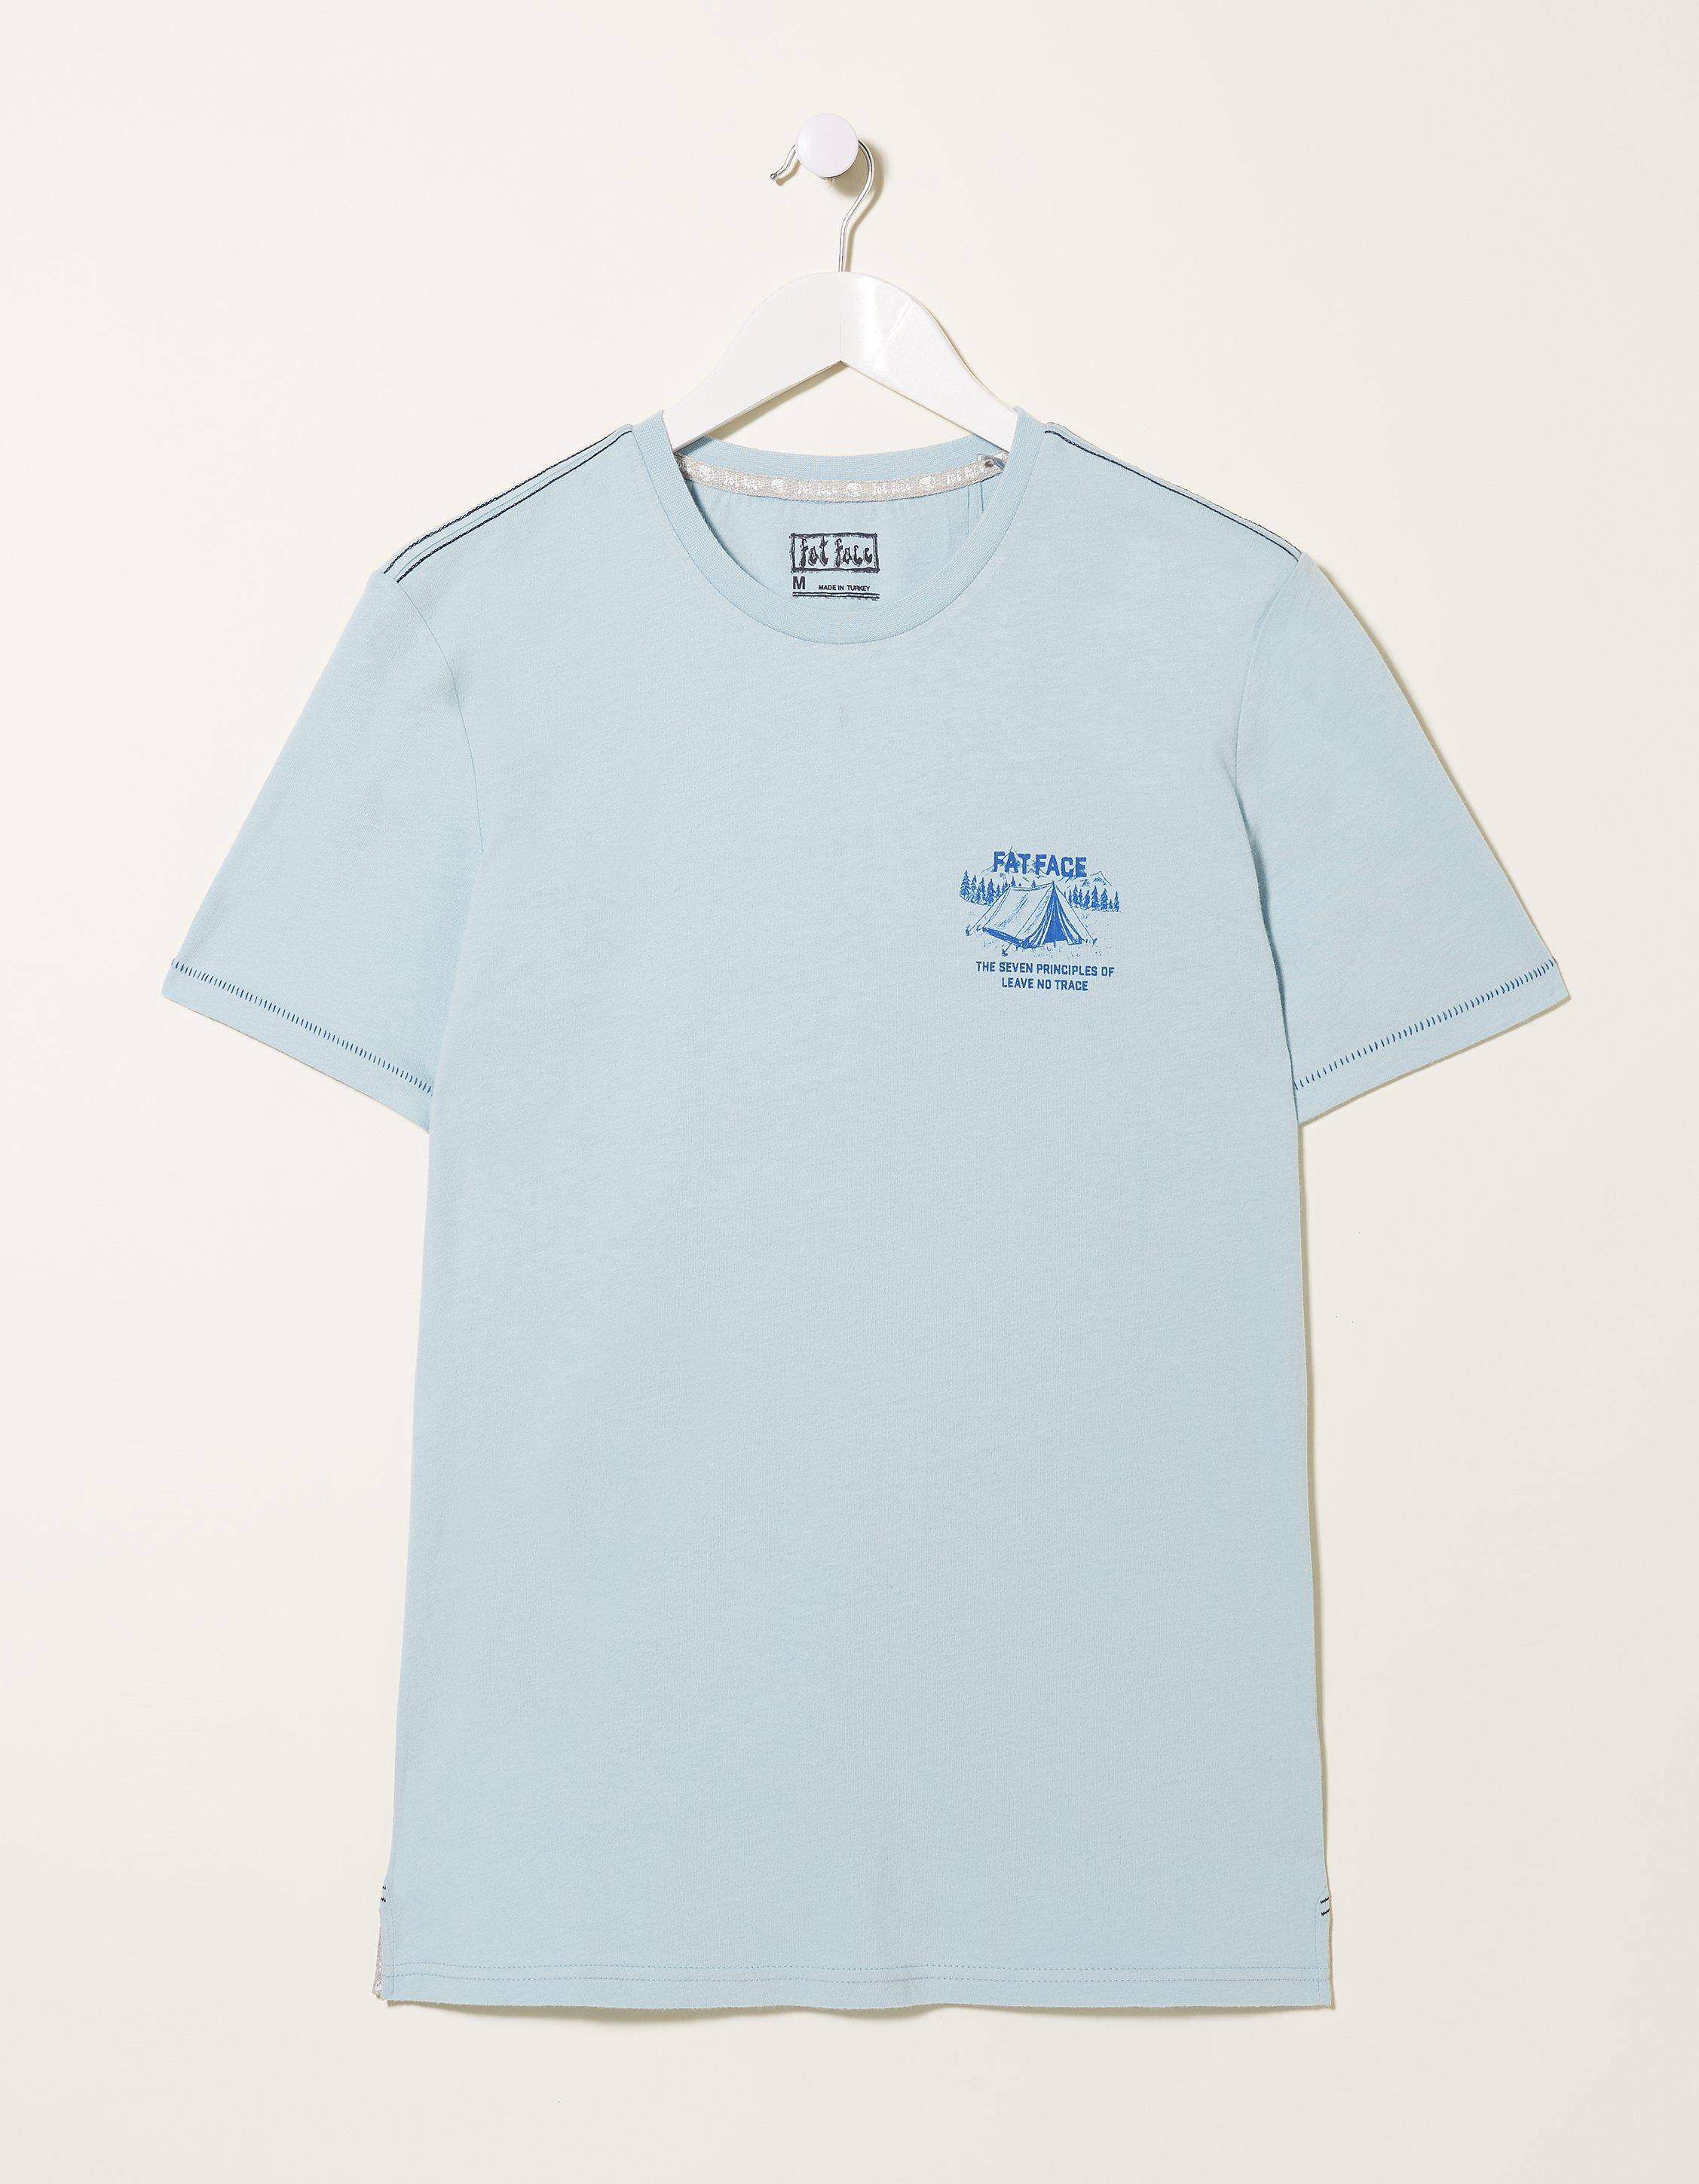 Fat Face Technical Camping T-Shirt  - Size: Extra Large